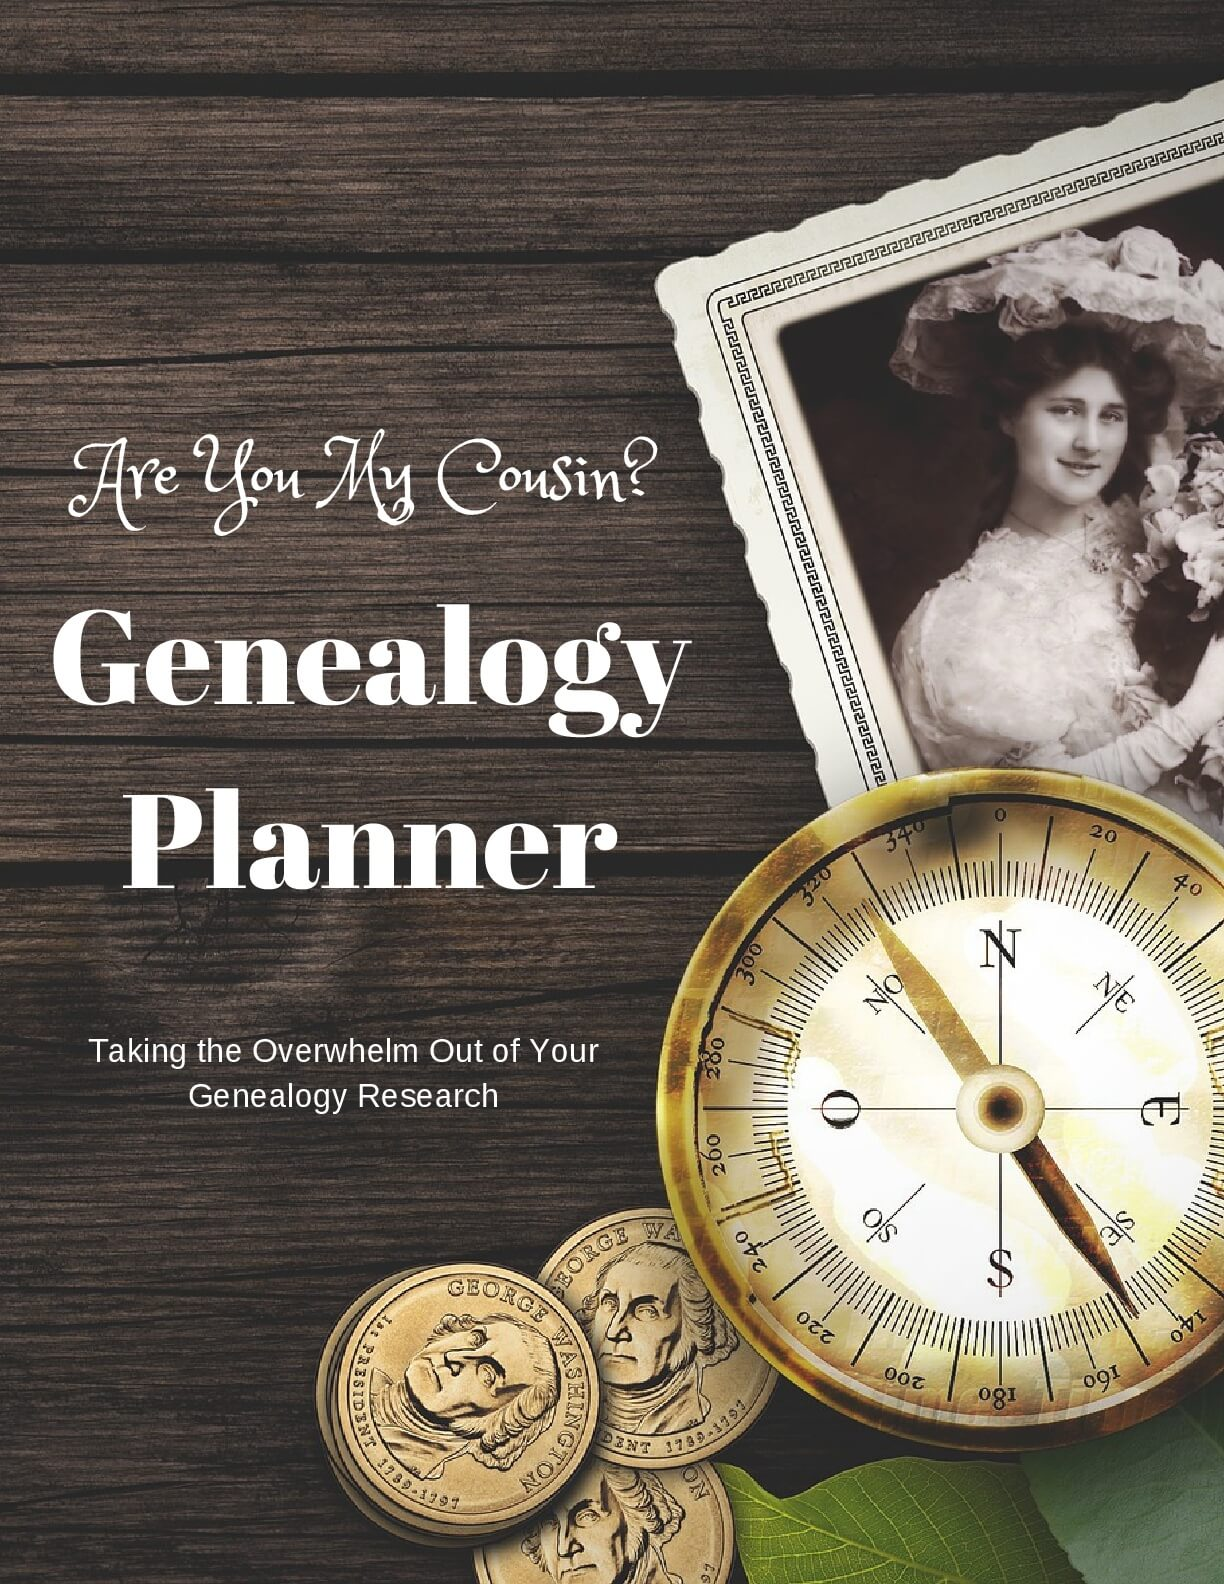 The Are You My Cousin? Genealogy Planner is designed to help take the overwhelm out of planning and organizing your genealogy research.